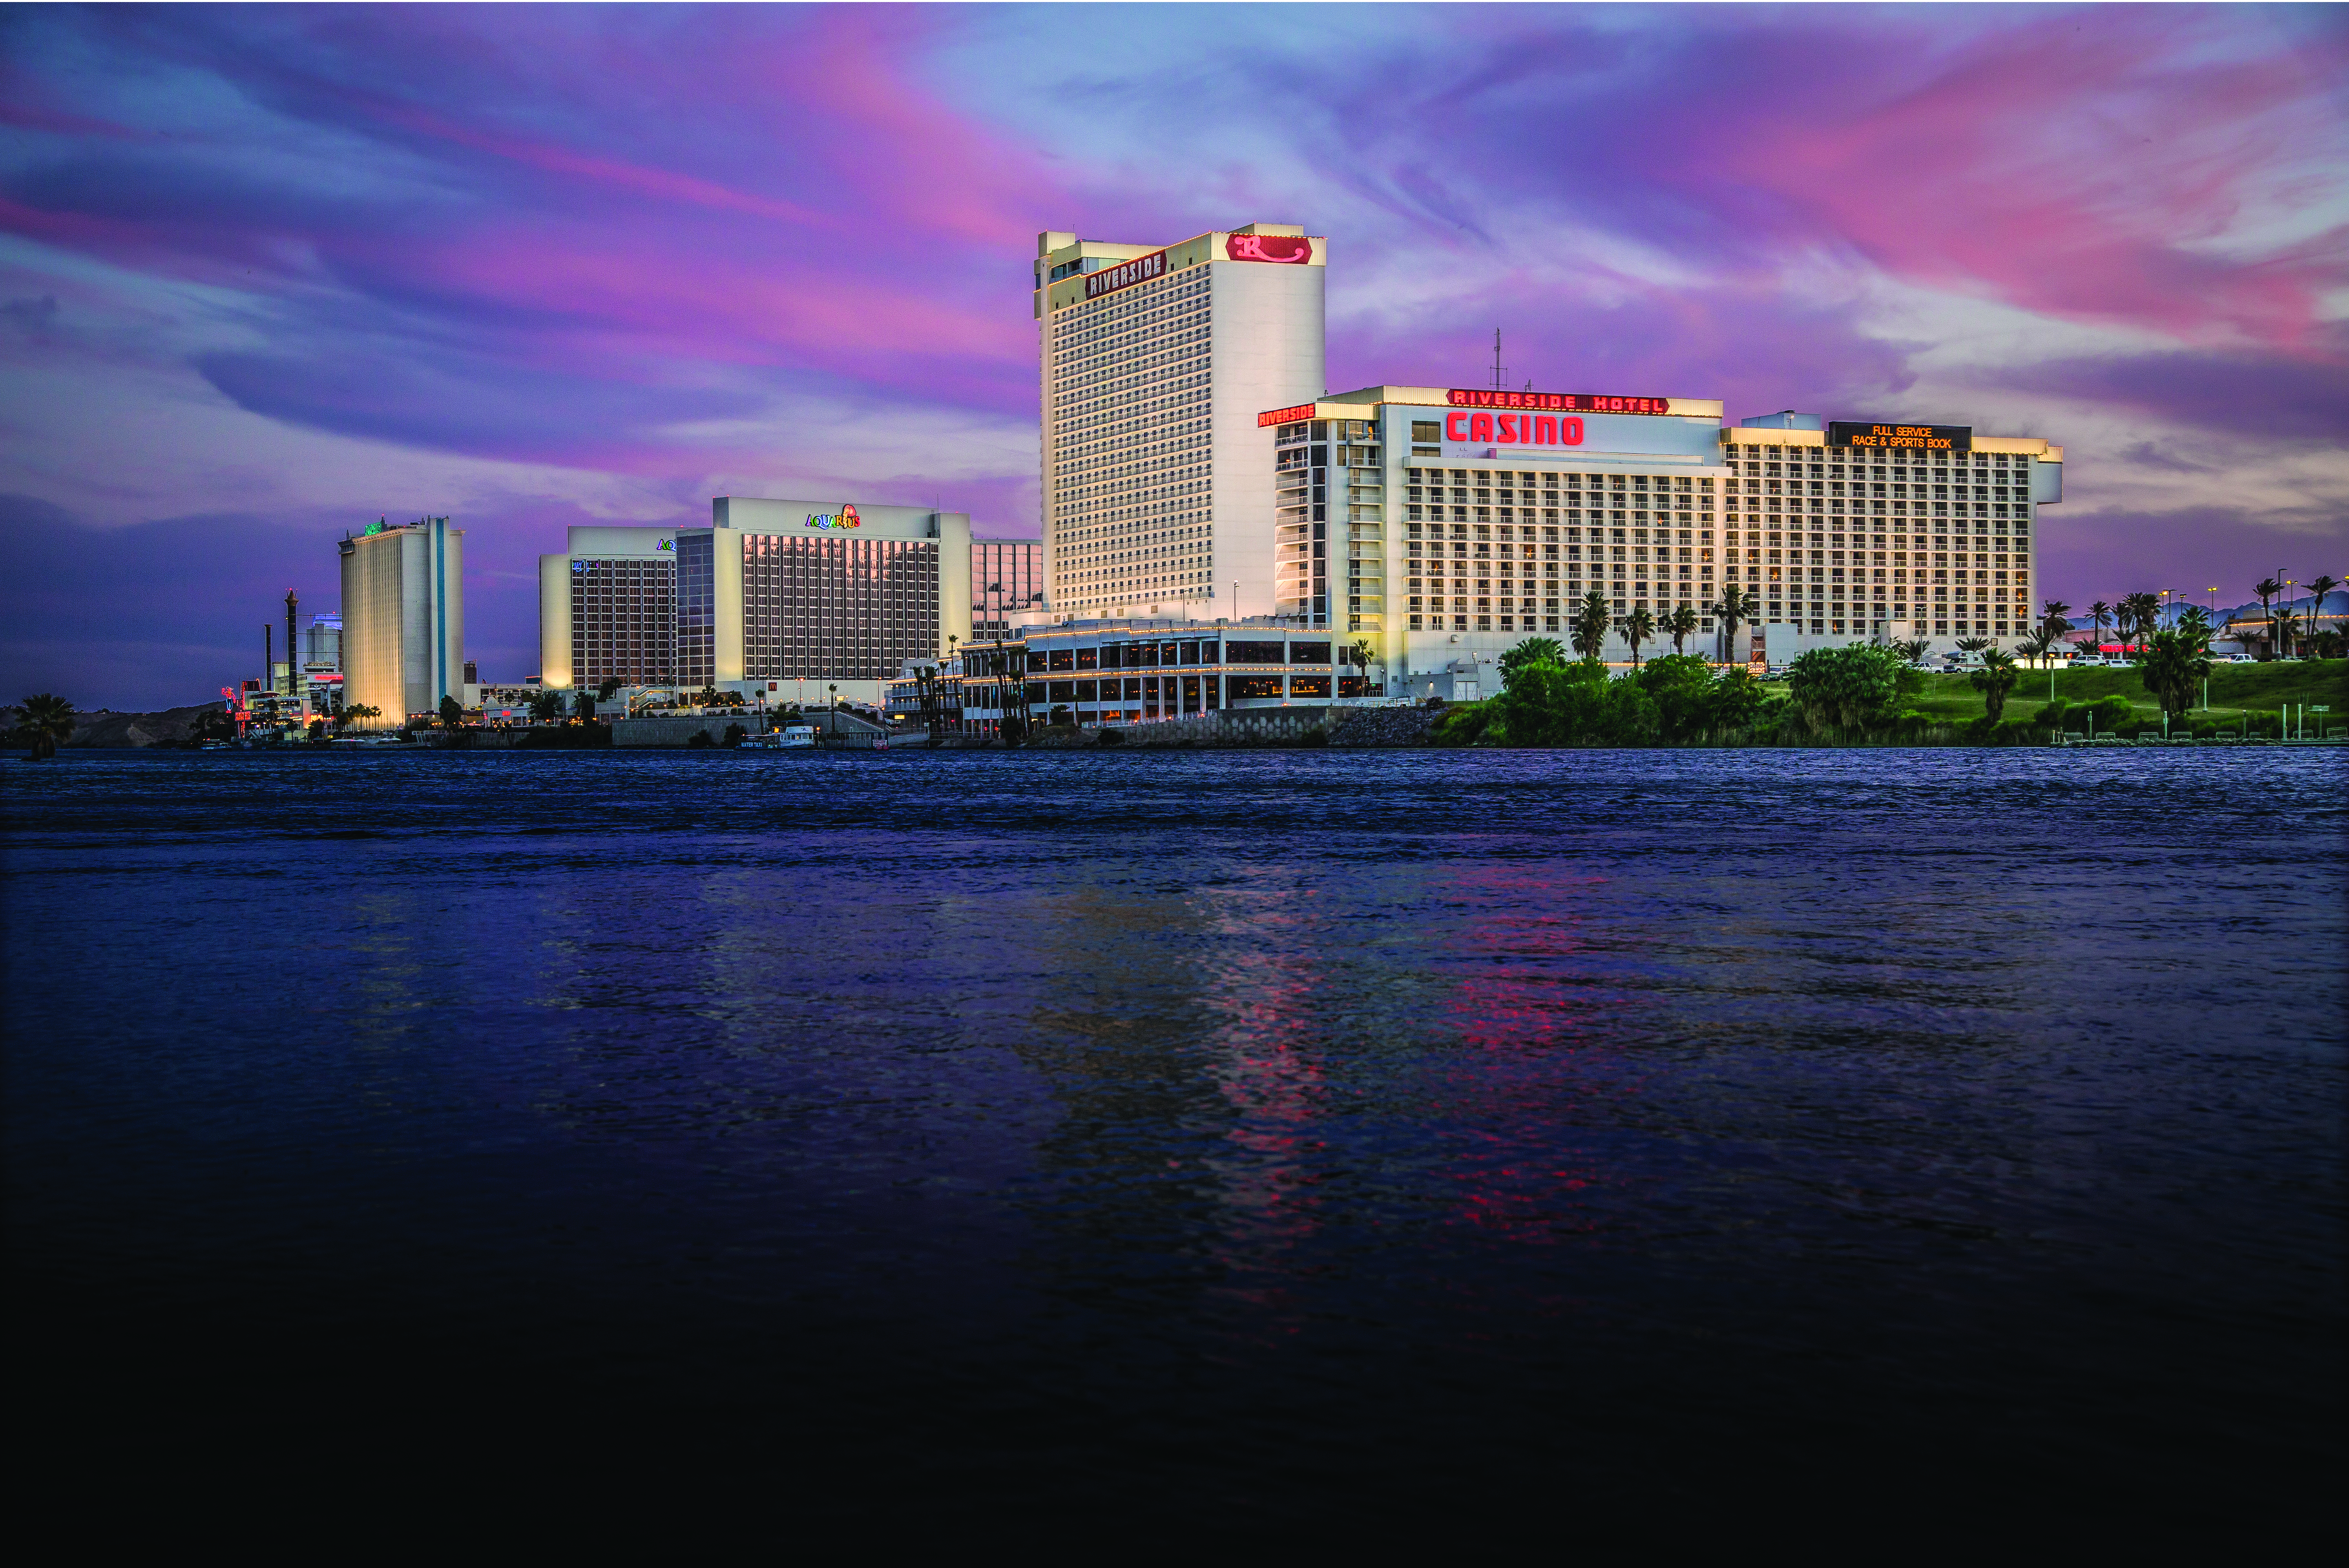 Laughlin, Nevada | Find Hotels, Events, Restaurants & Things to Do on